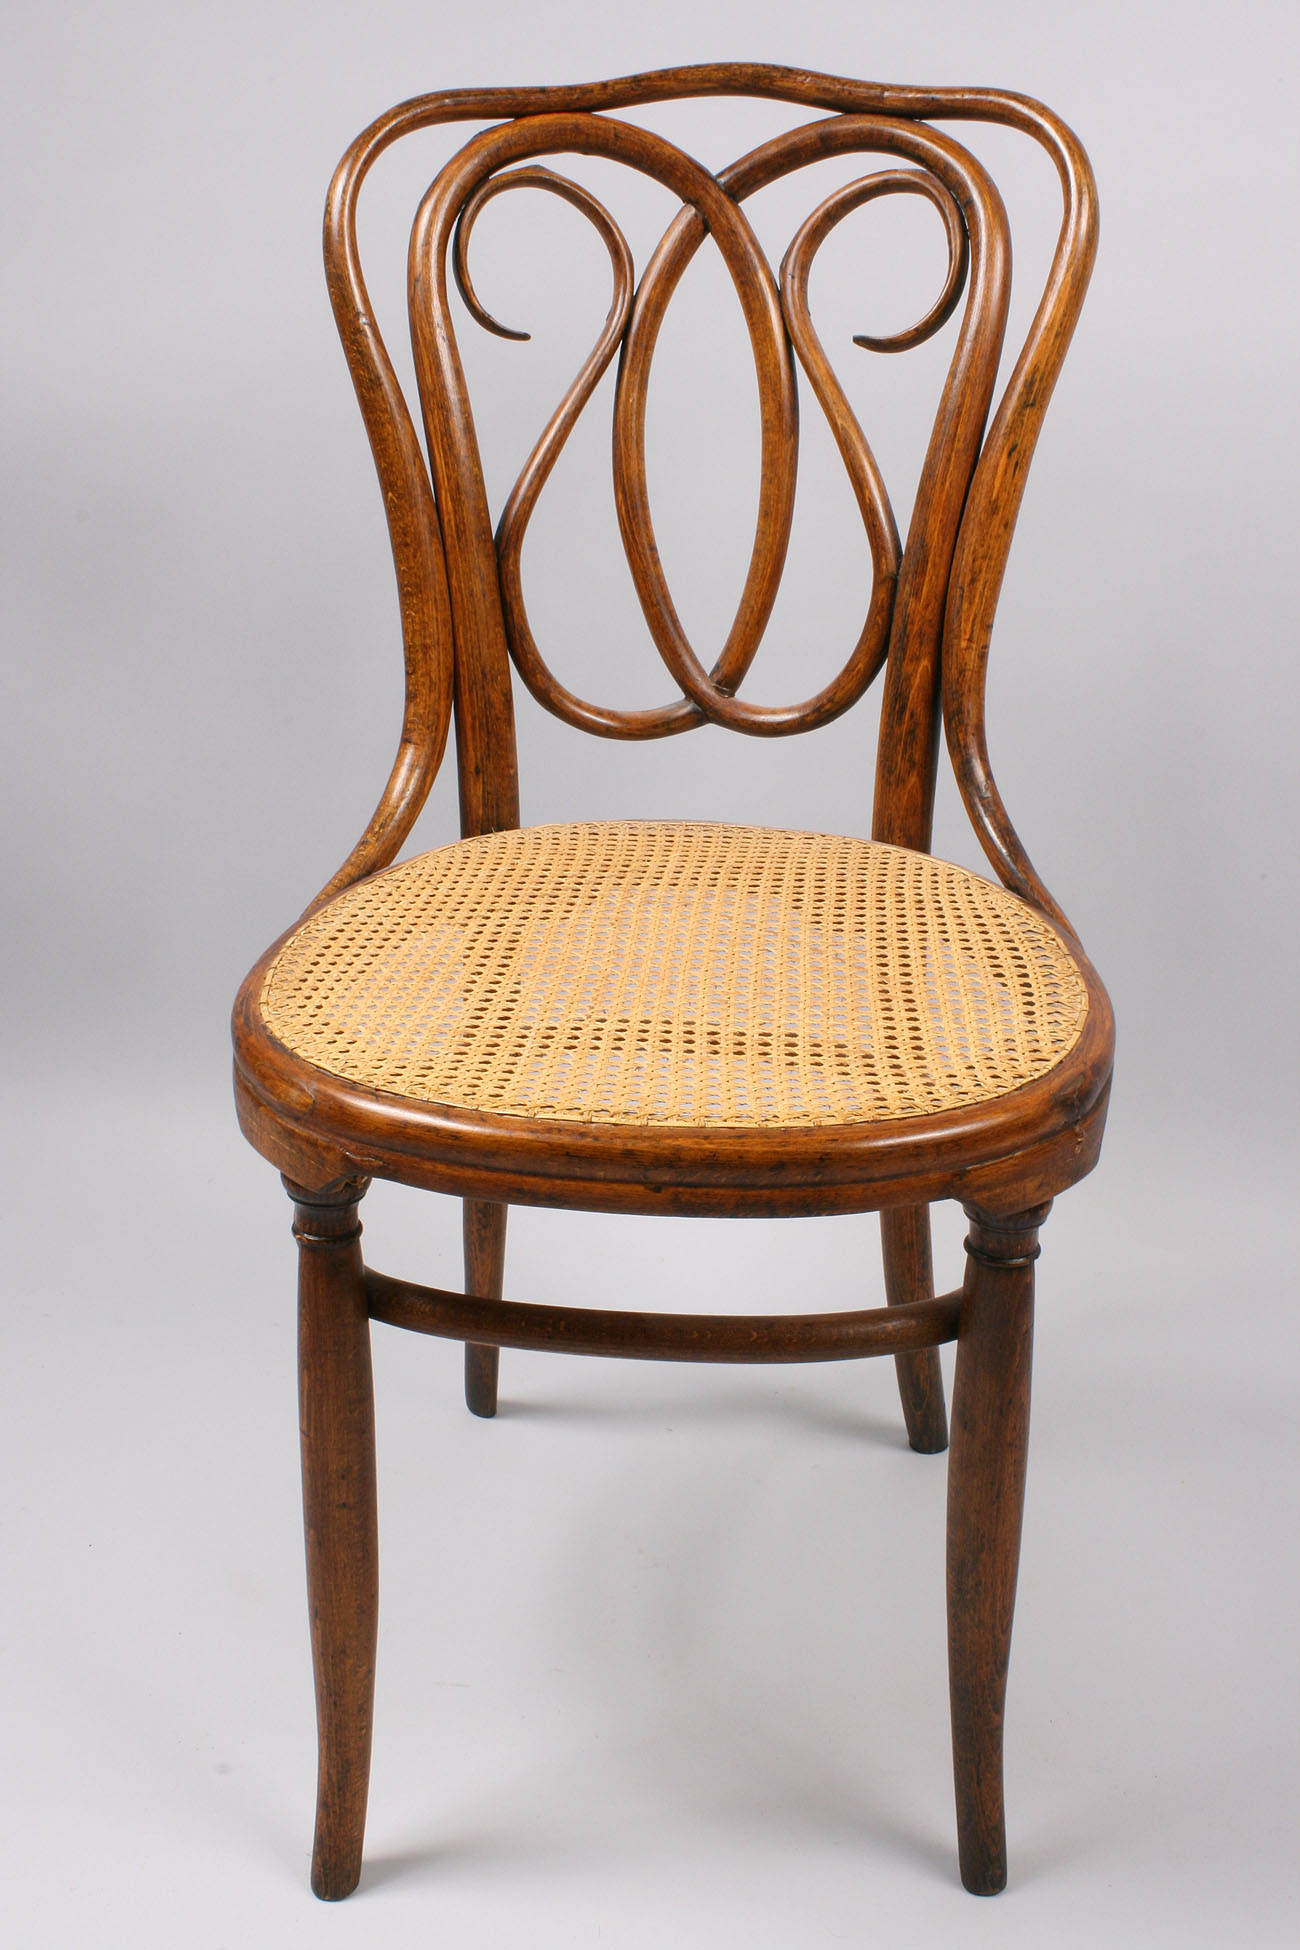 Bent Wood Chairs Lot 146 J And J Kohn Bentwood Chair